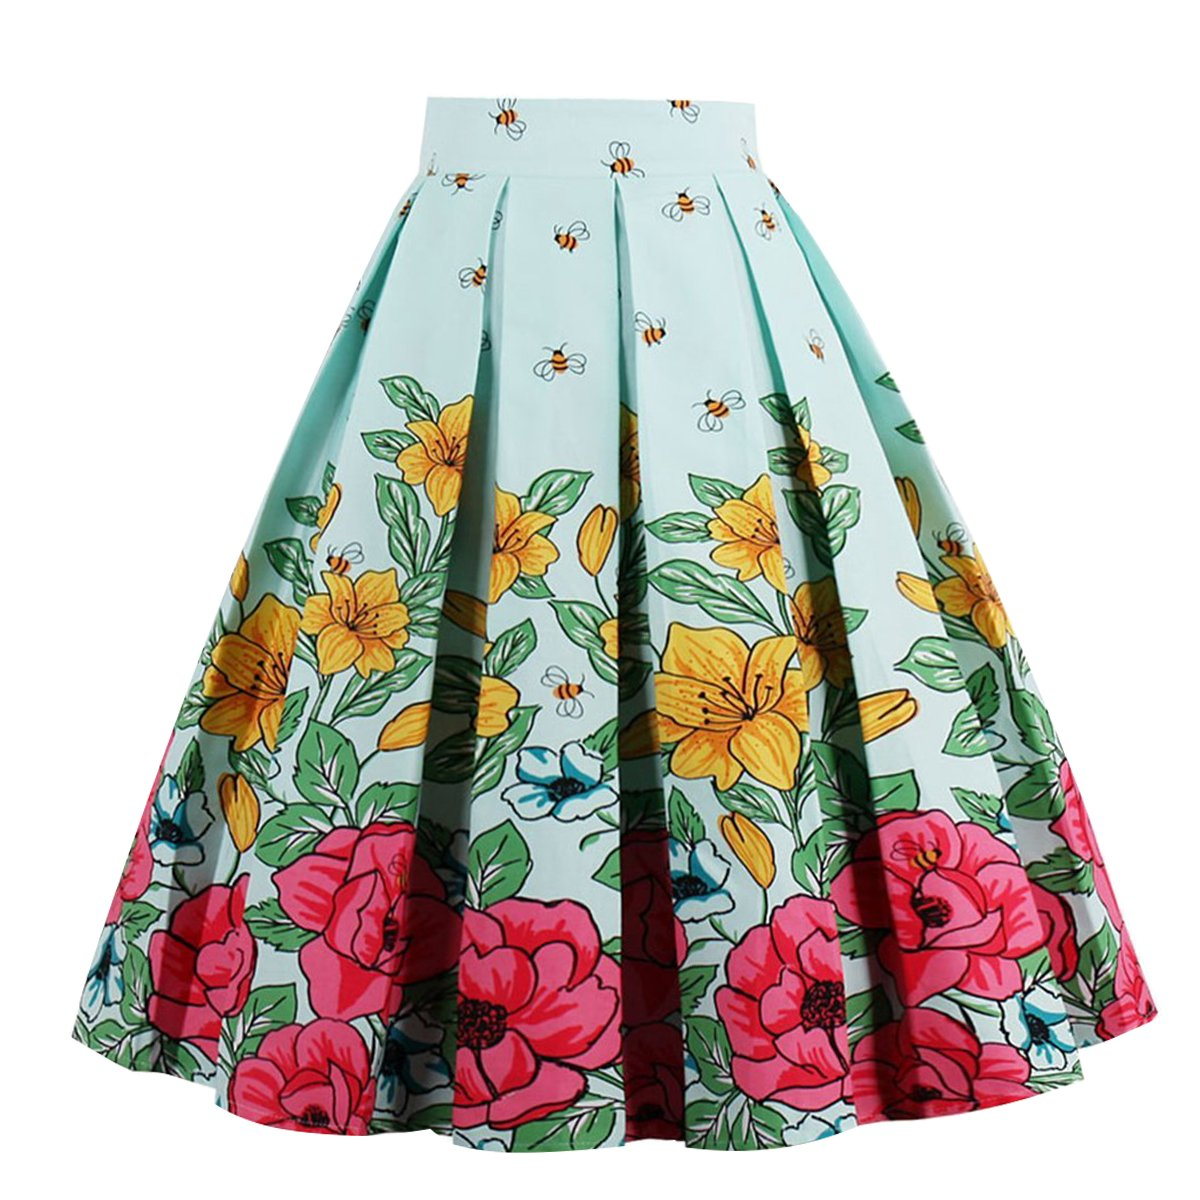 Girstunm Women's Pleated Vintage Skirt Floral Print A-Line Midi Skirts with Pockets Bee-Flower XL